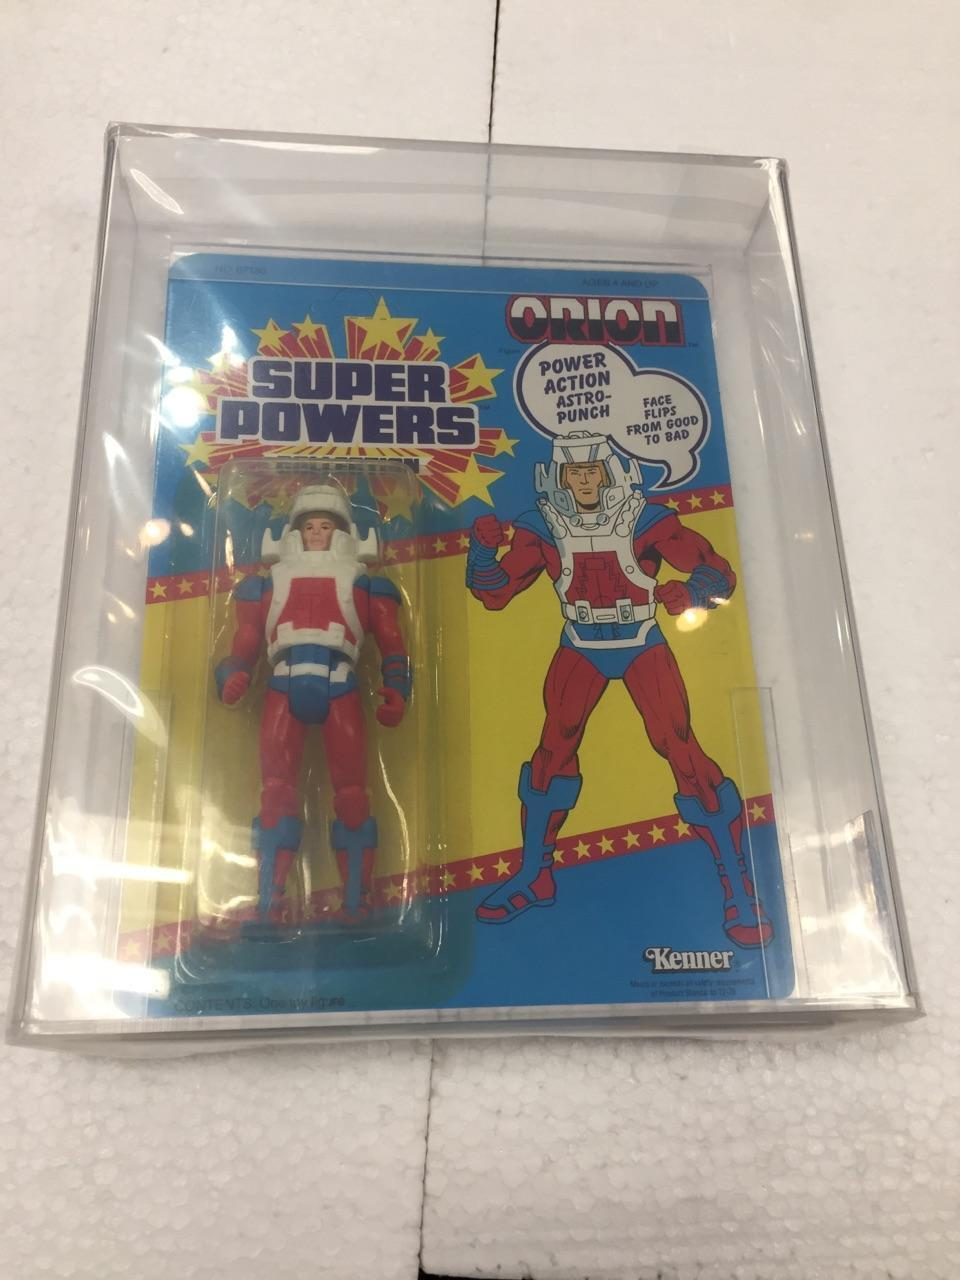 1986 Super Powers Collection ORION 1 18 by Kenner